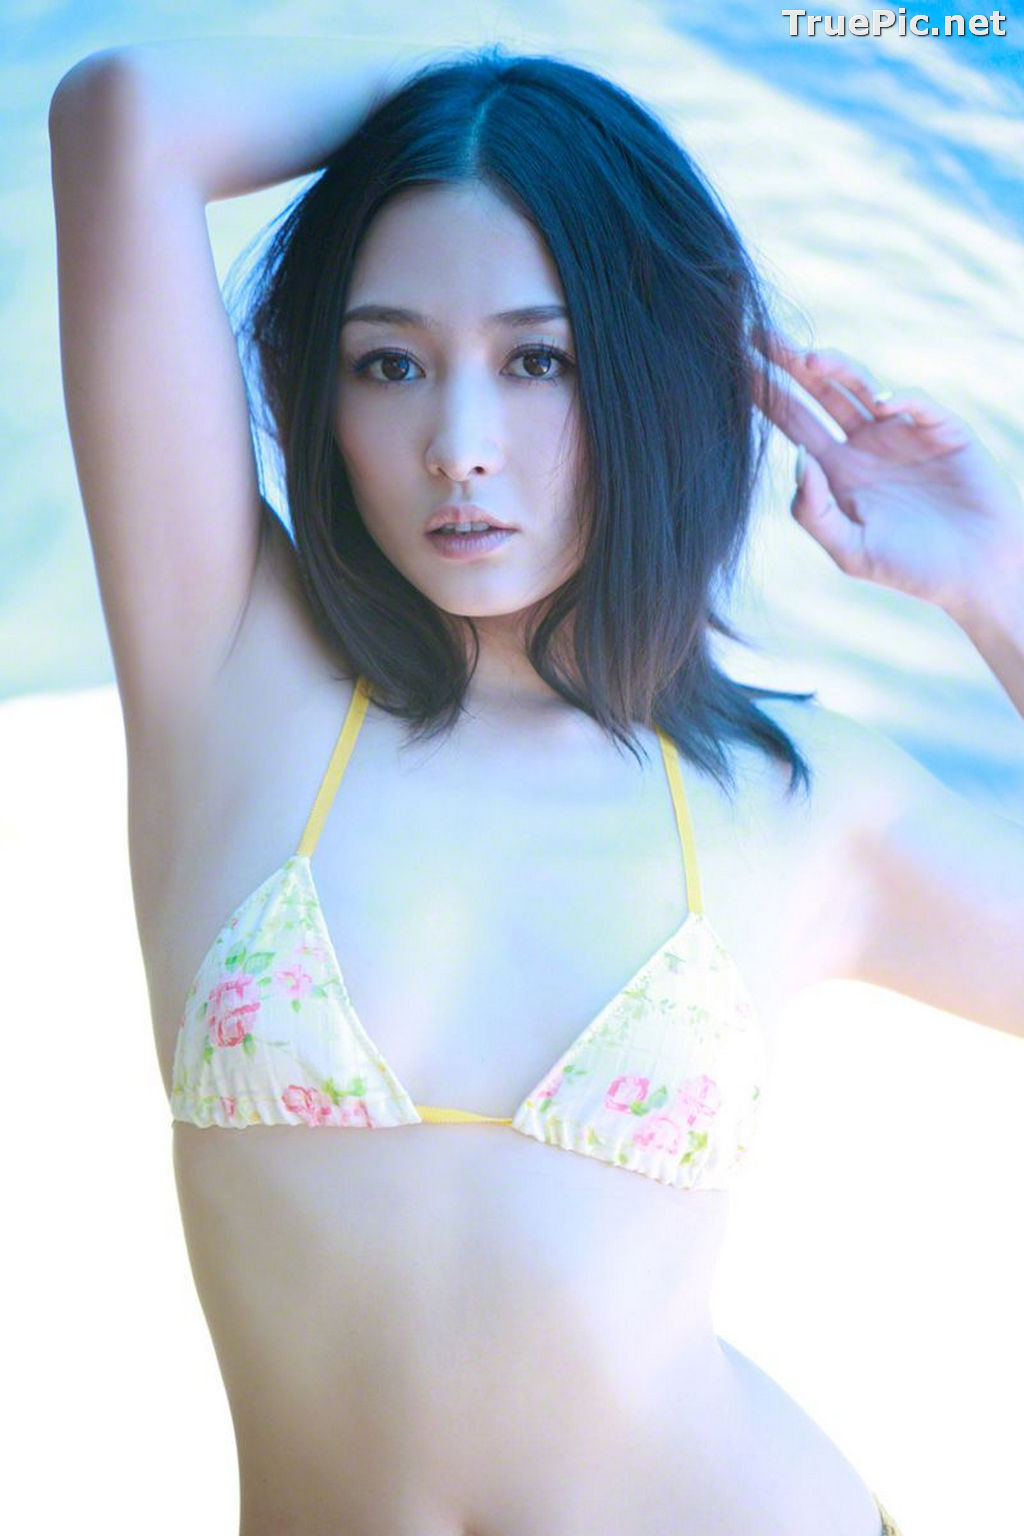 Image Wanibooks No.123 - Japanese Voice Actress and Model - Sayuri Anzu - TruePic.net - Picture-3